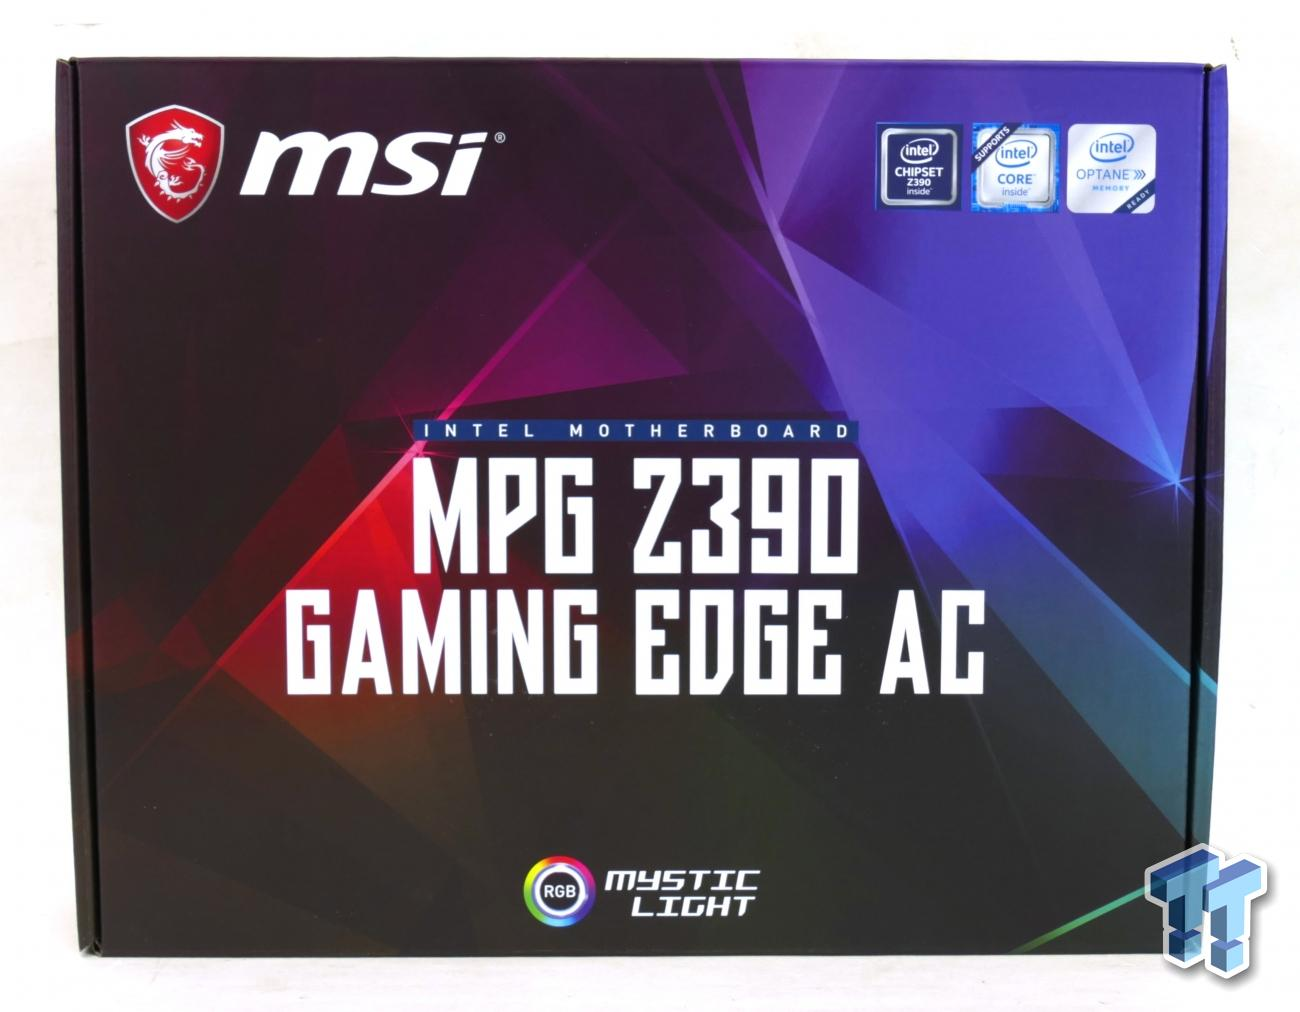 MSI Z390 Gaming Edge AC (Intel Z390) Motherboard Review